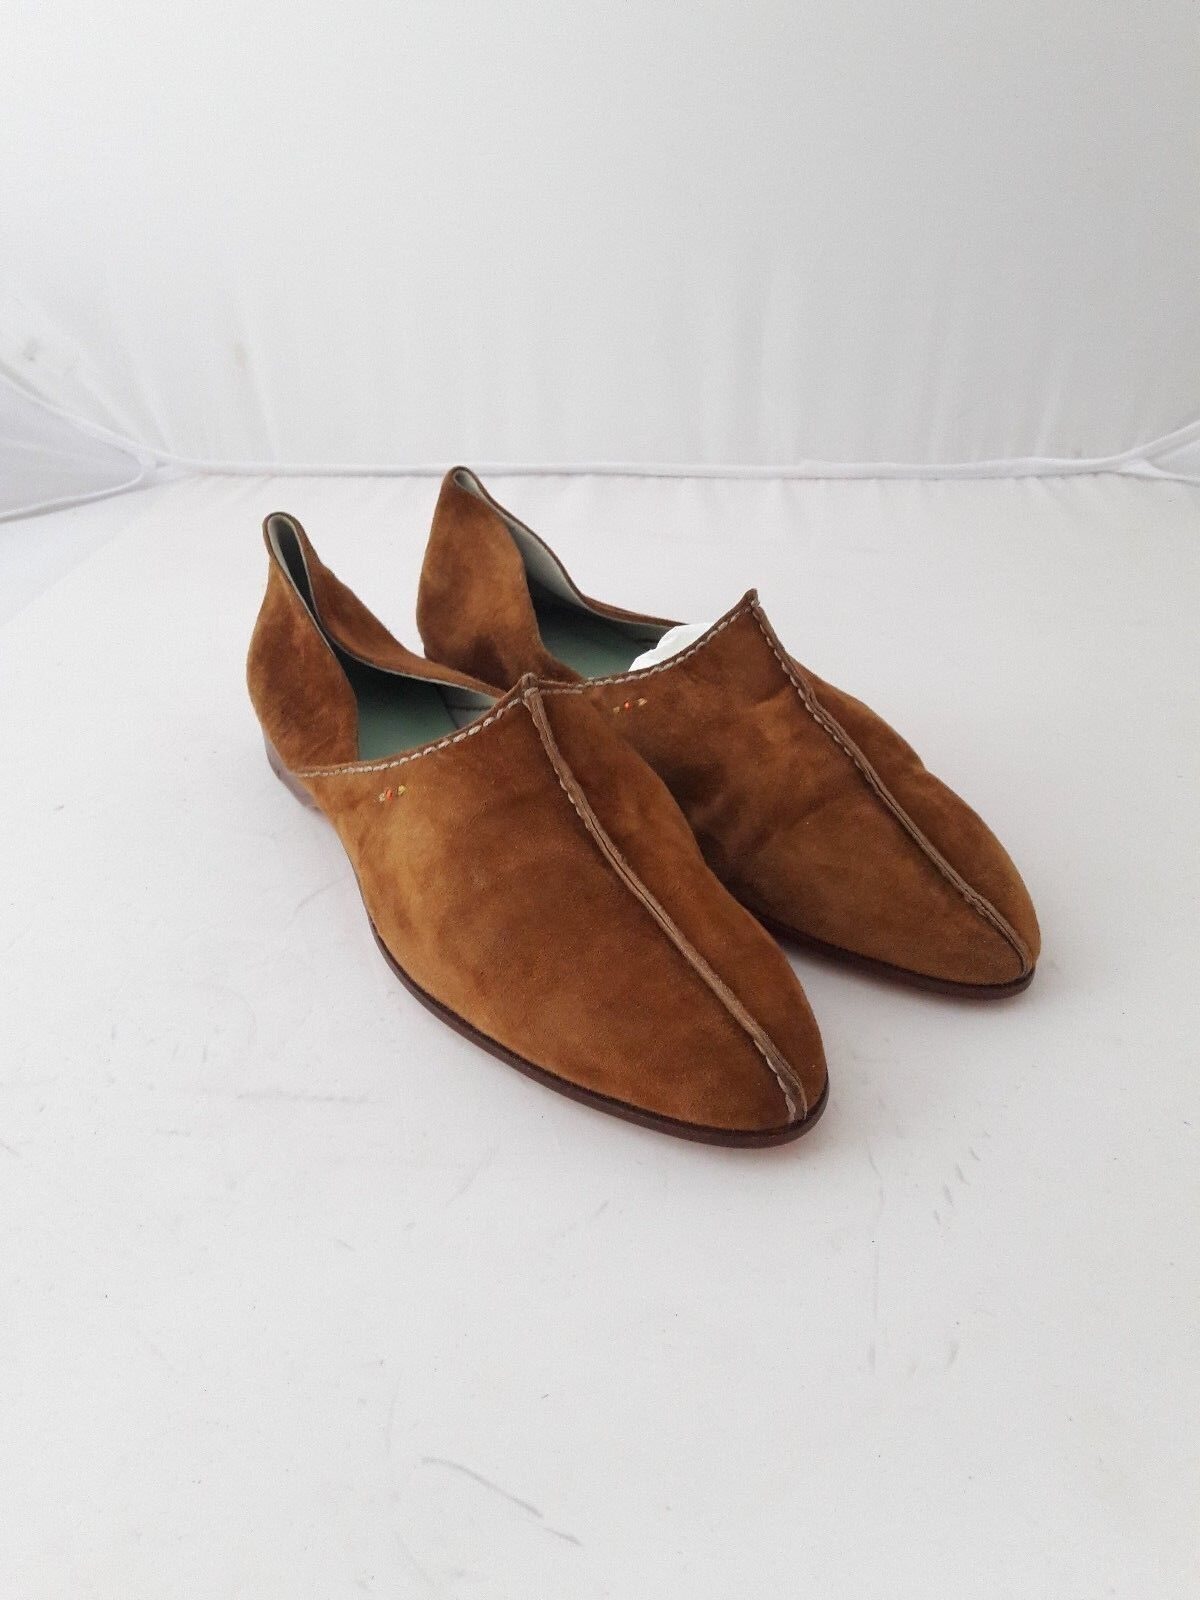 Henry cuir en Daim Marron Plates Chaussures Taille 37.5